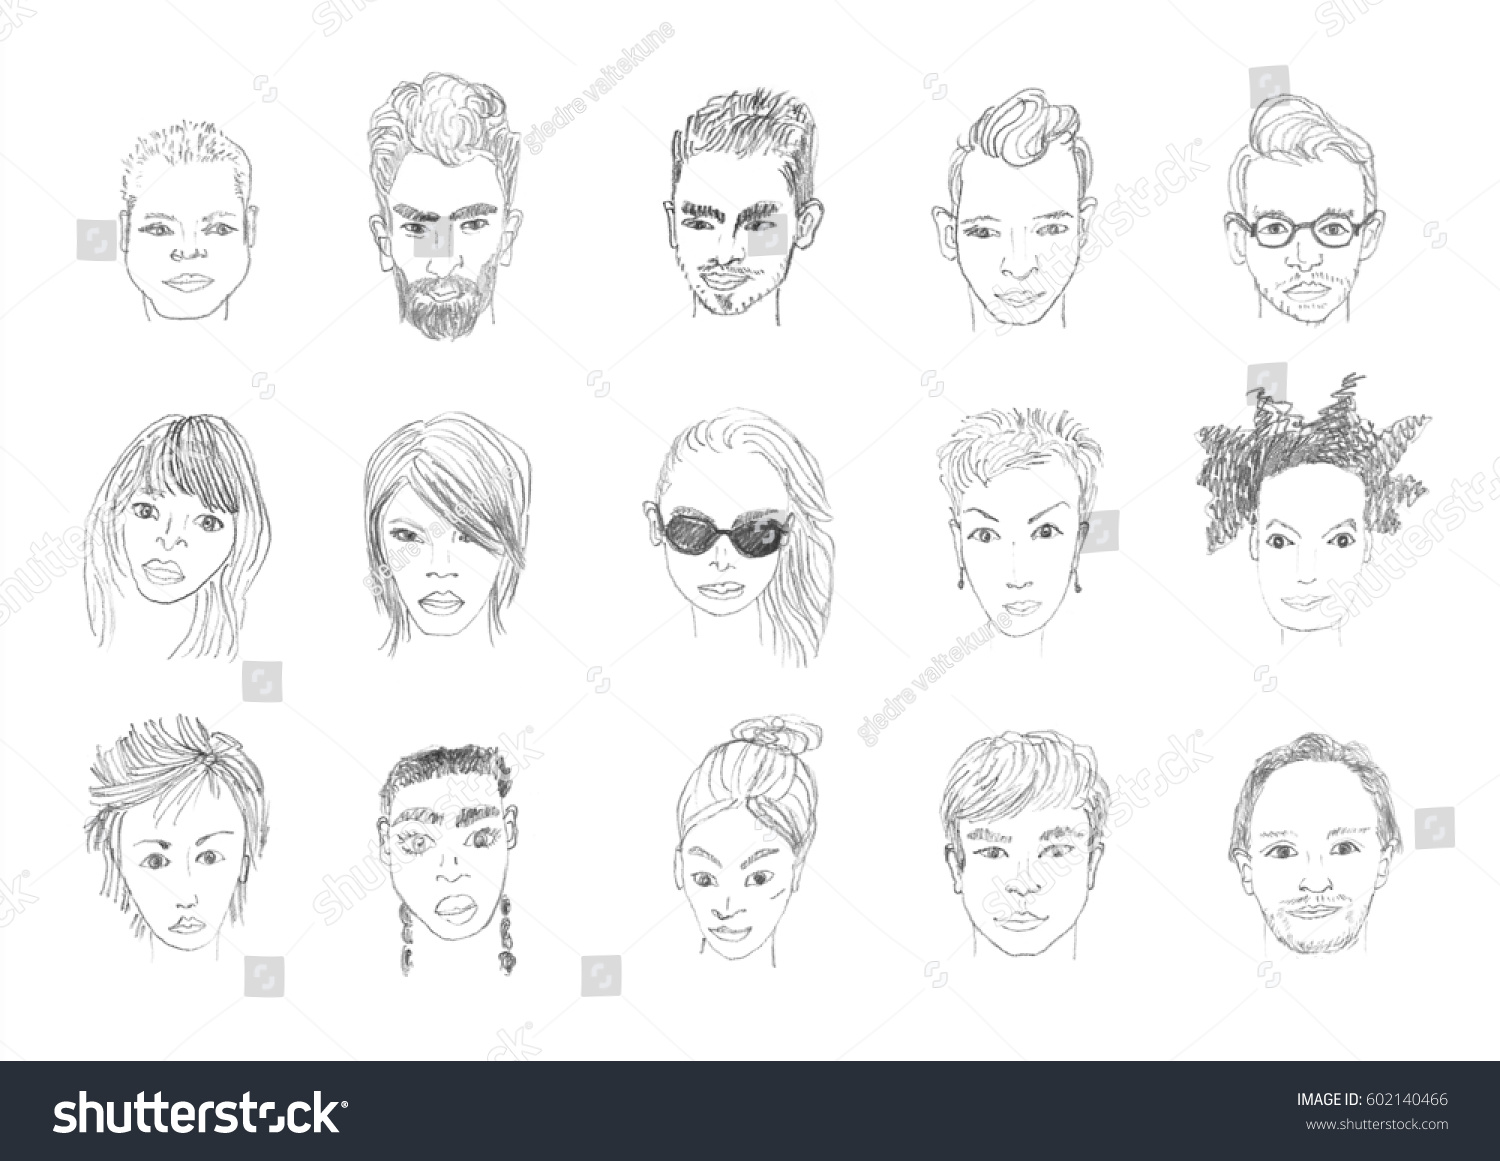 People faces pencil drawing men and women faces hand drawing cartoon pencil sketching